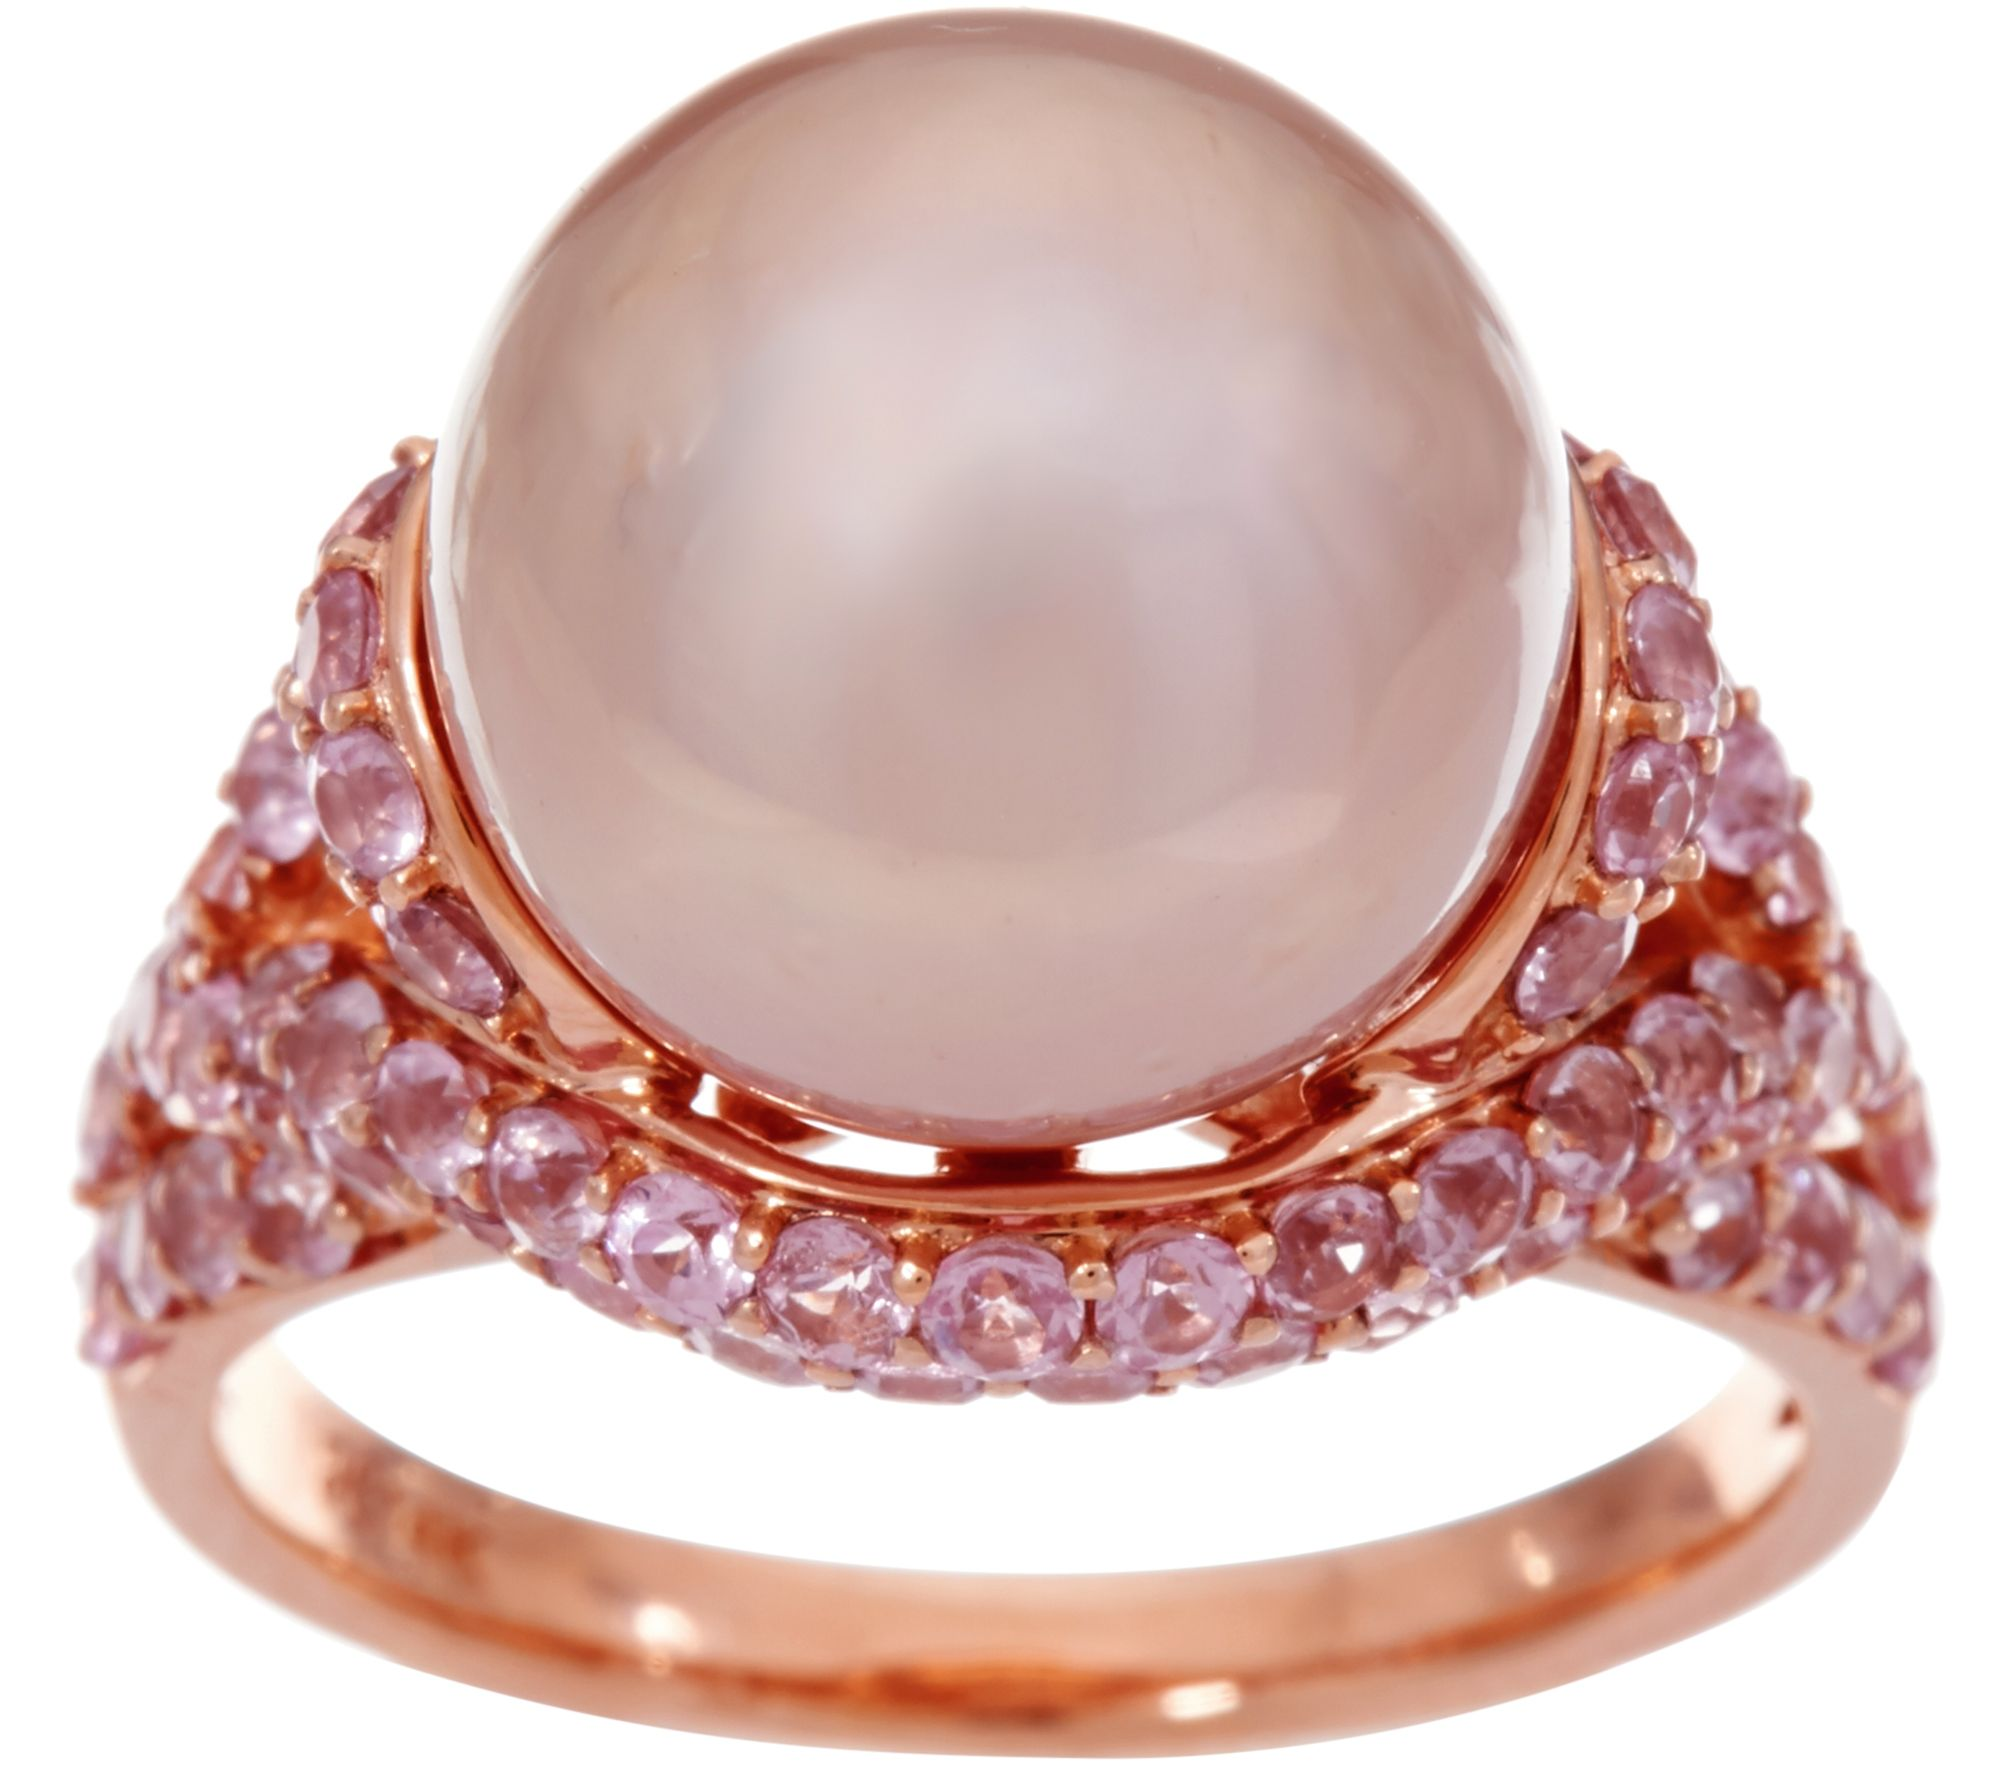 Honora Ming Cultured Pearl & Pink Spinel Ring, 14k, 200 Cttw  Page 1 —  Qvc